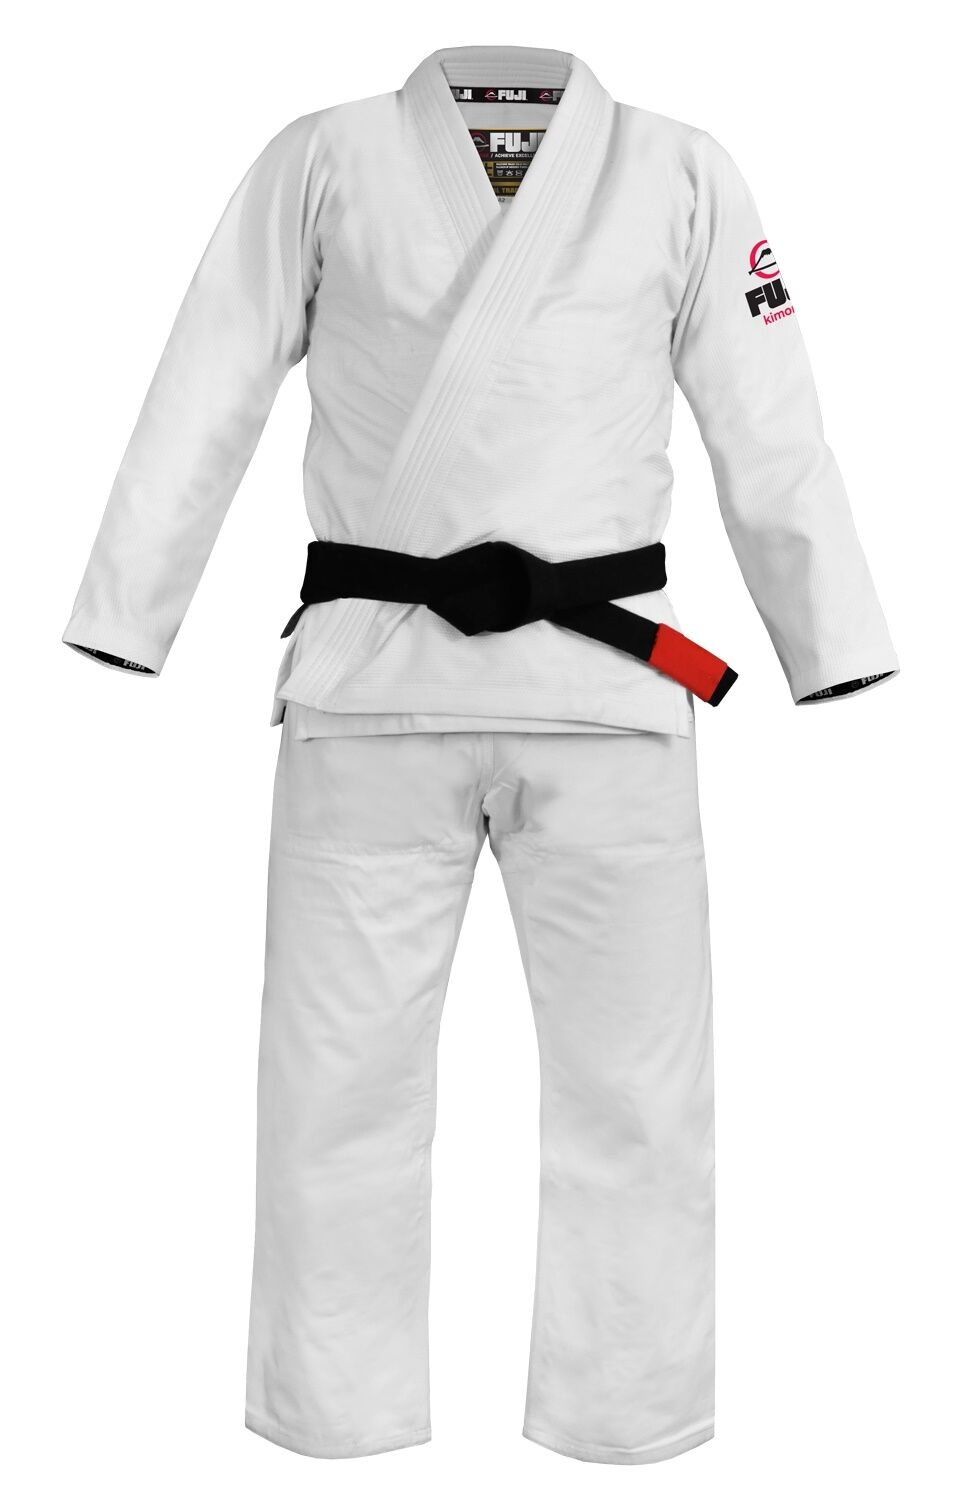 New Fuji  Lightweight Light Summer Weight Mens Brazilian Gi Jiu-Jitsu BJJ - White  great offers